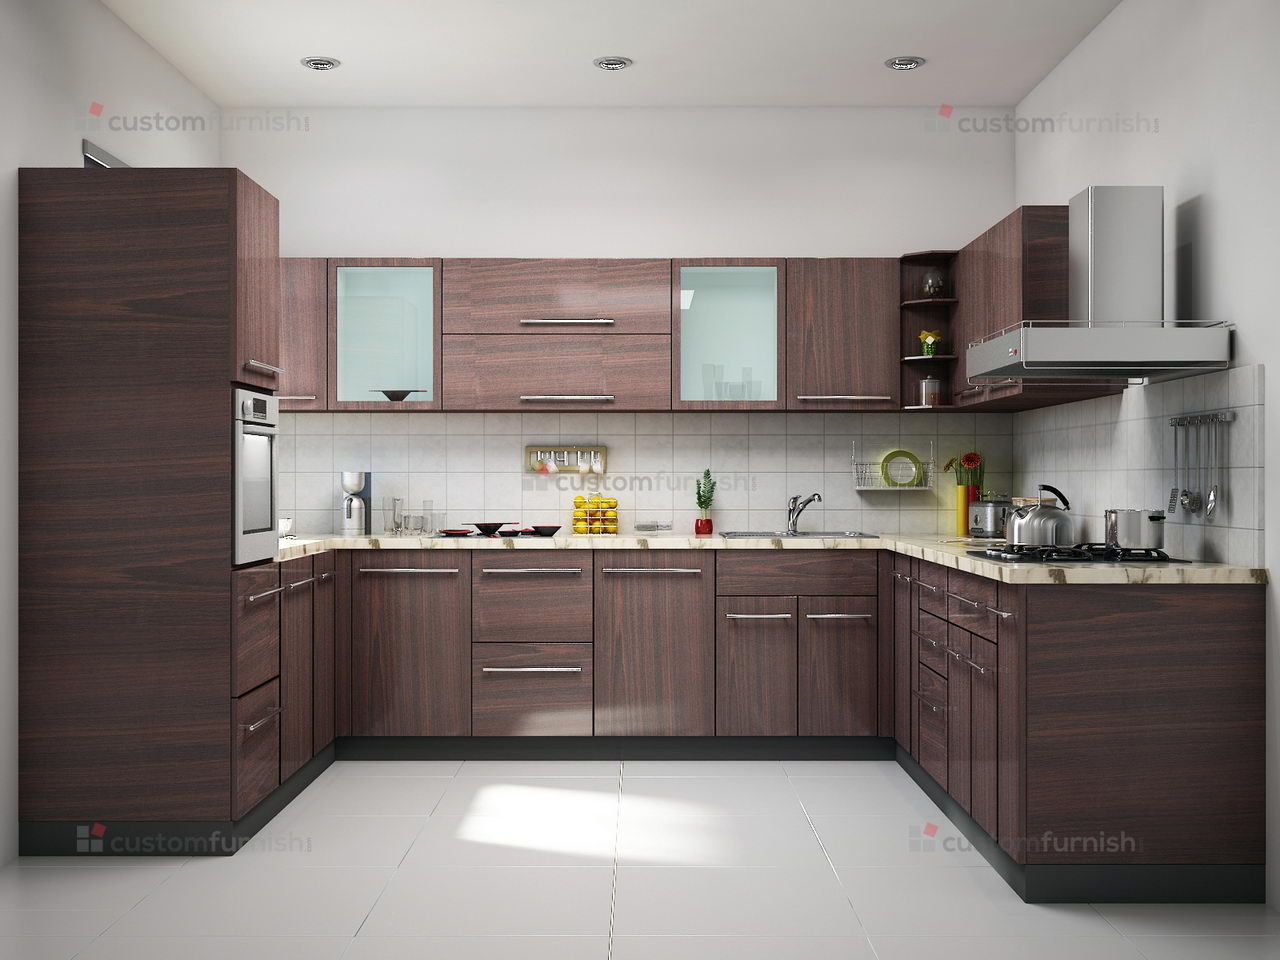 Kitchen styles designs different kitchen styles designs kitchen decor design ideas kitchen - Kitchens styles and designs ...